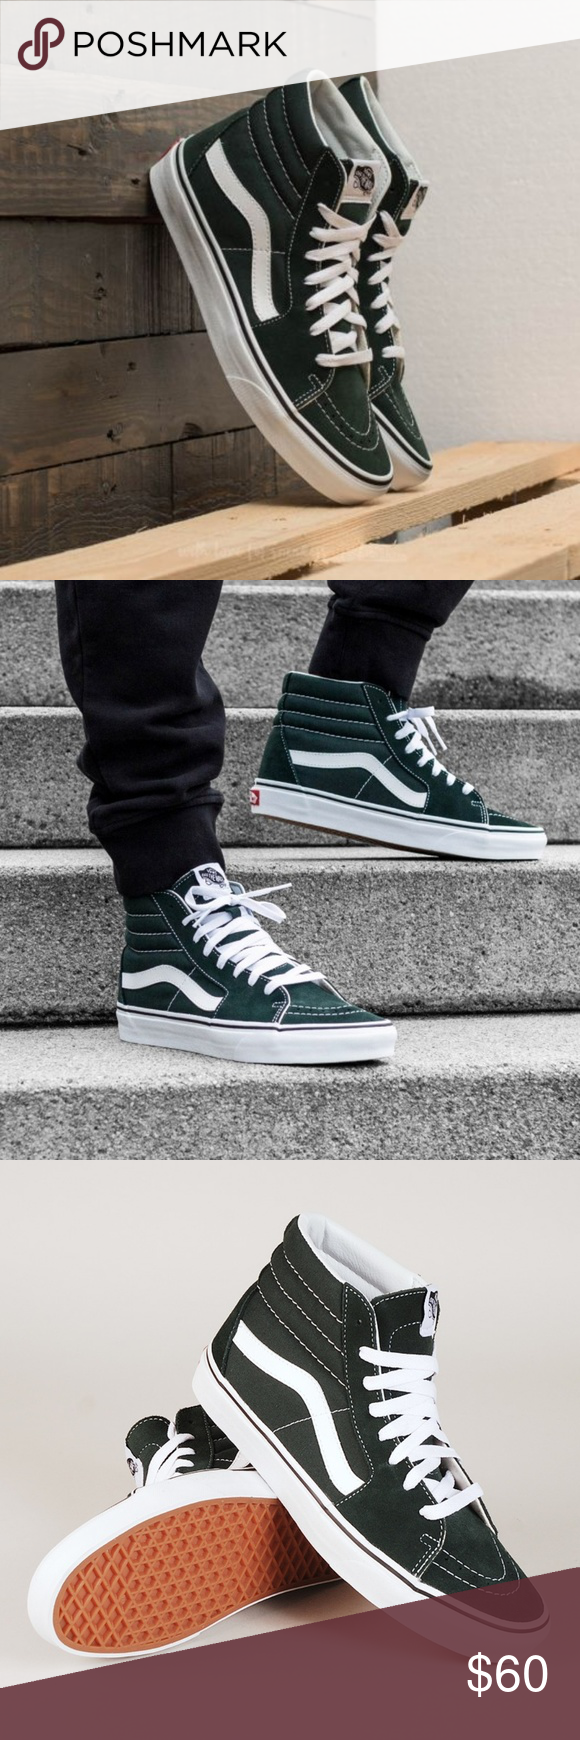 54aba5db2430 Vans Scarab green and white high SK8-HI NWT IN BOX. Unisex. Fits a men s  10  women s 11.5